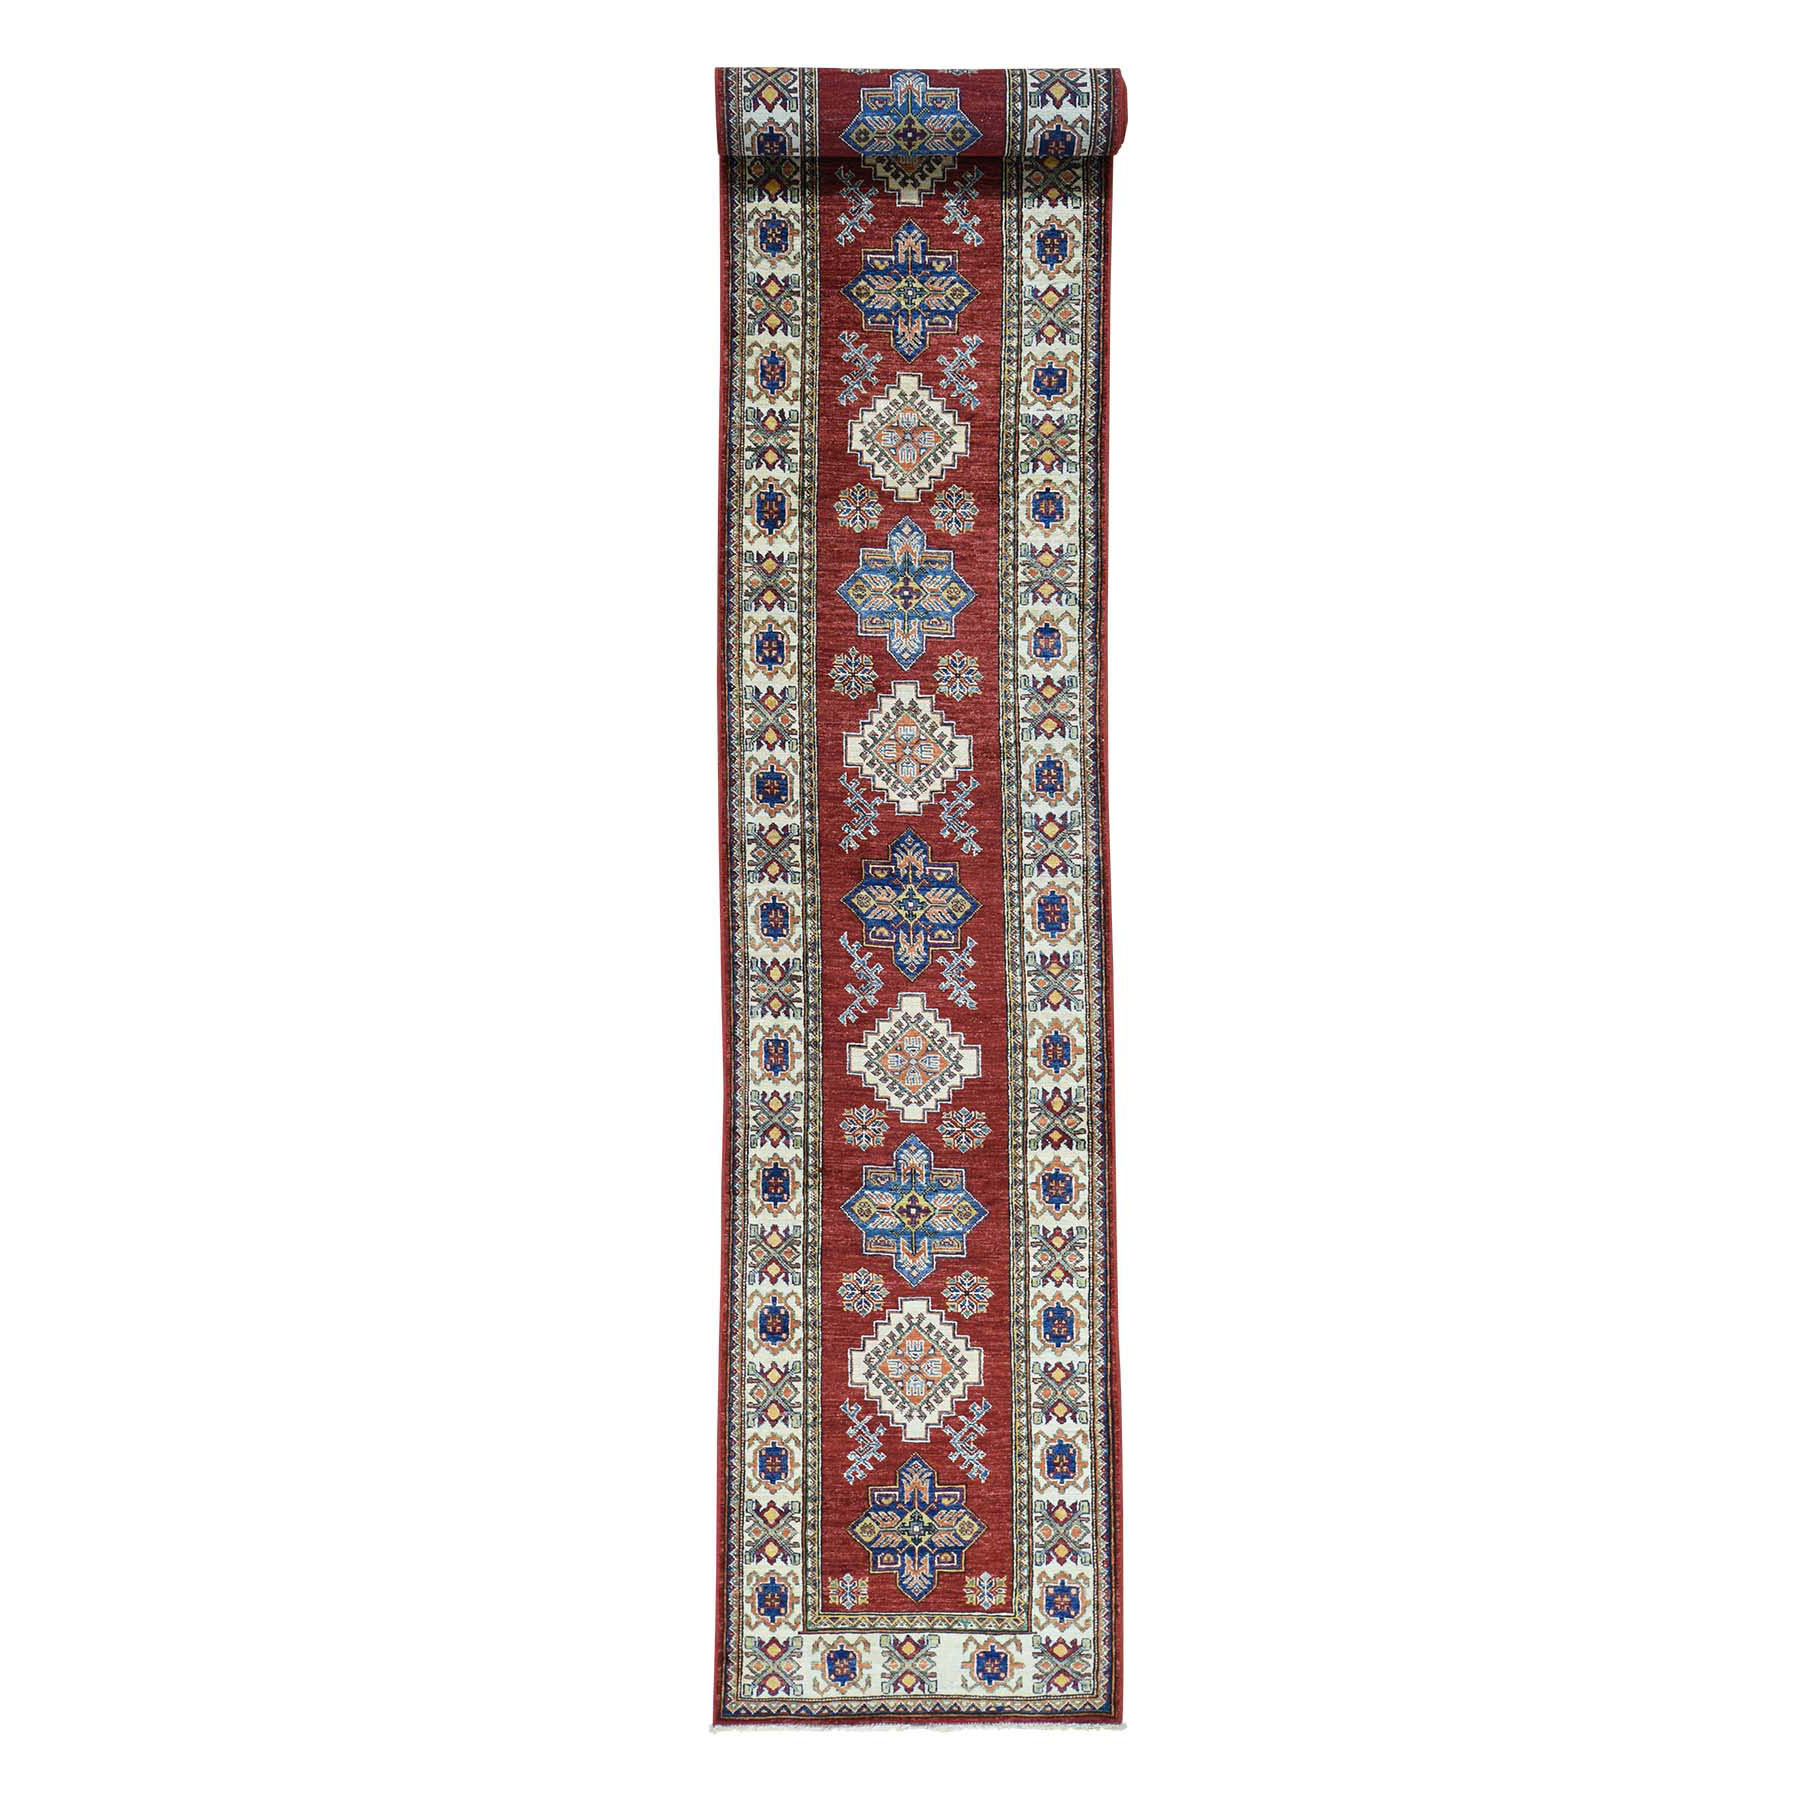 "2'6""X18'3"" Hand-Knotted Super Kazak Tribal Design Xl Runner Carpet moaca000"